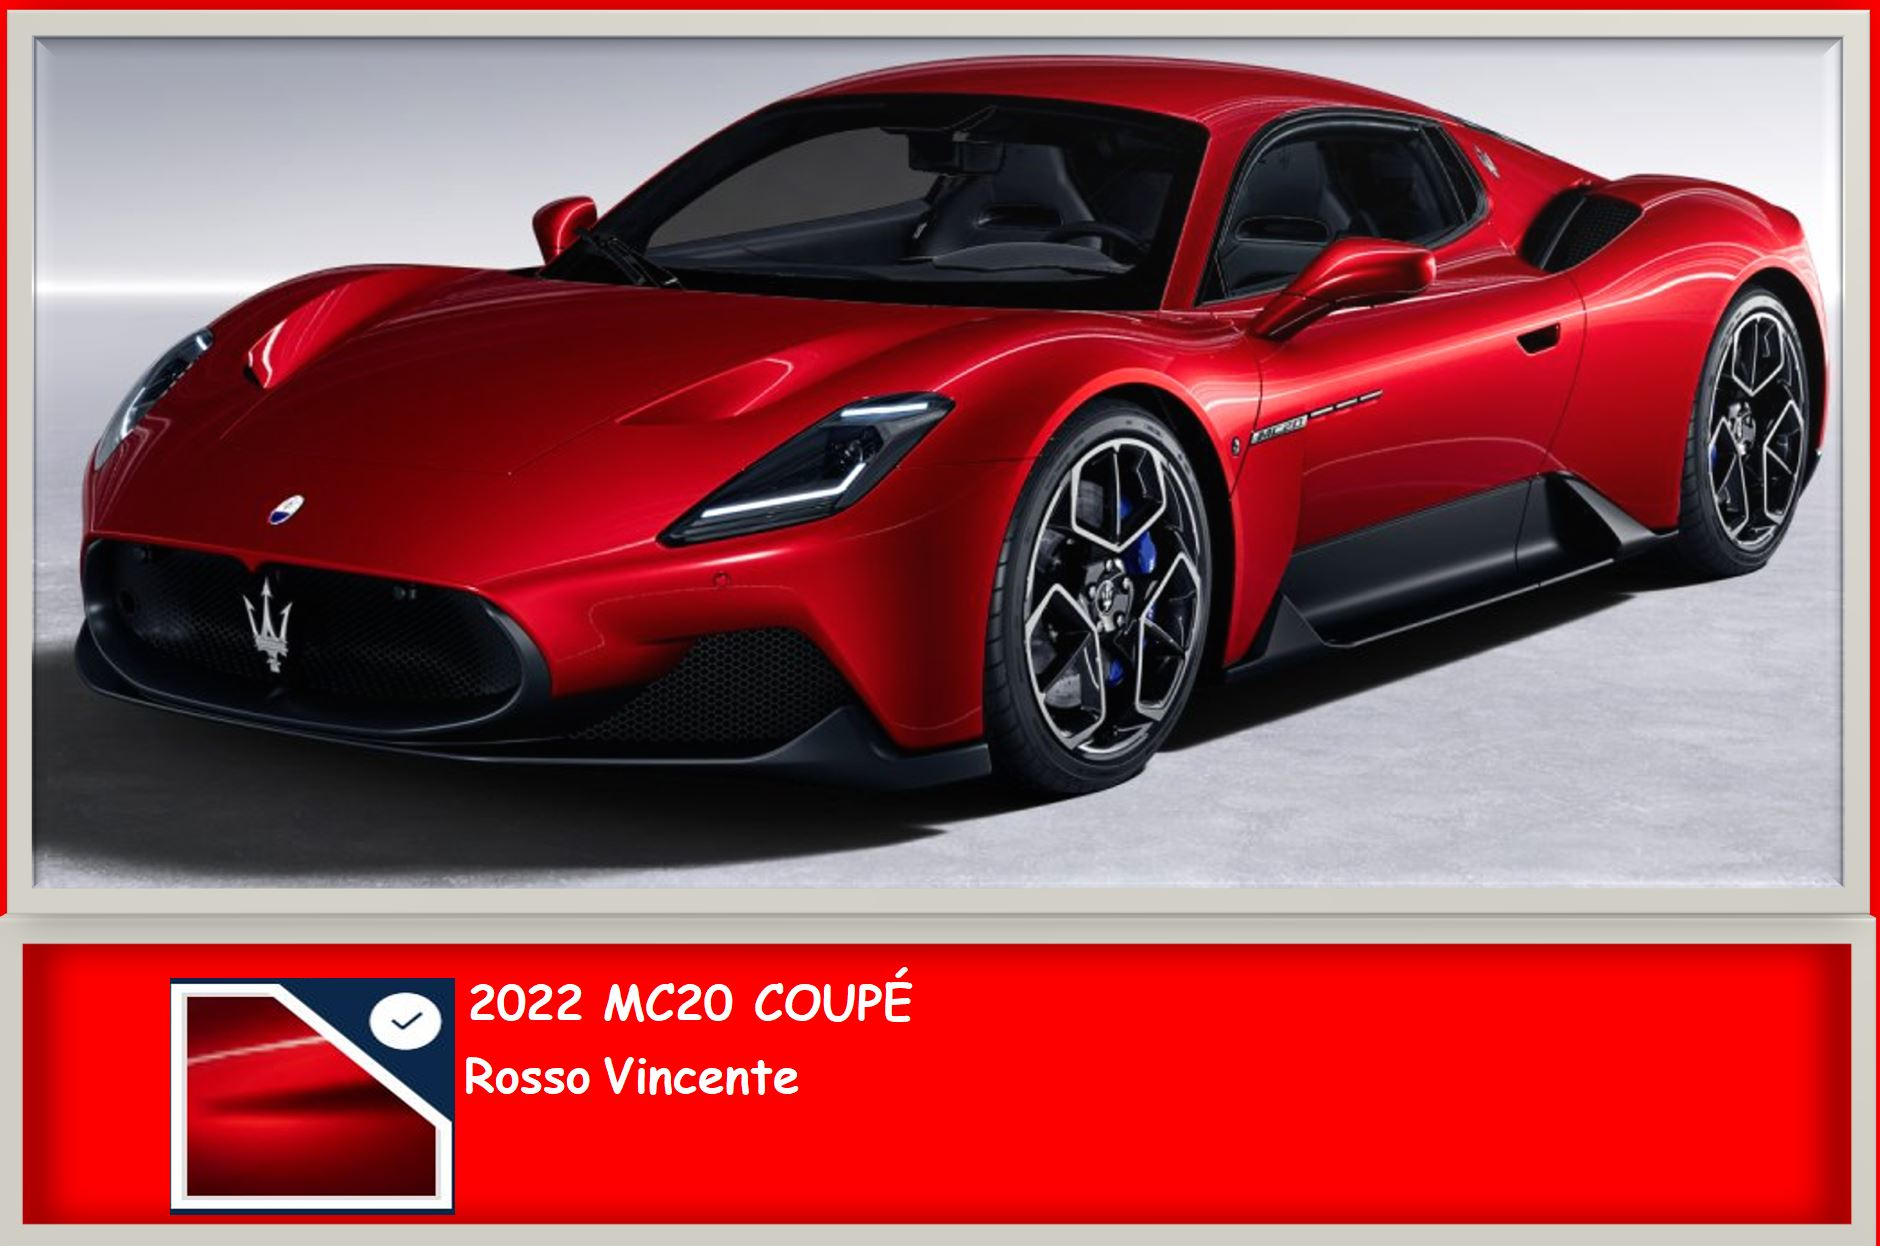 Rosso Vincente (Red) Paint